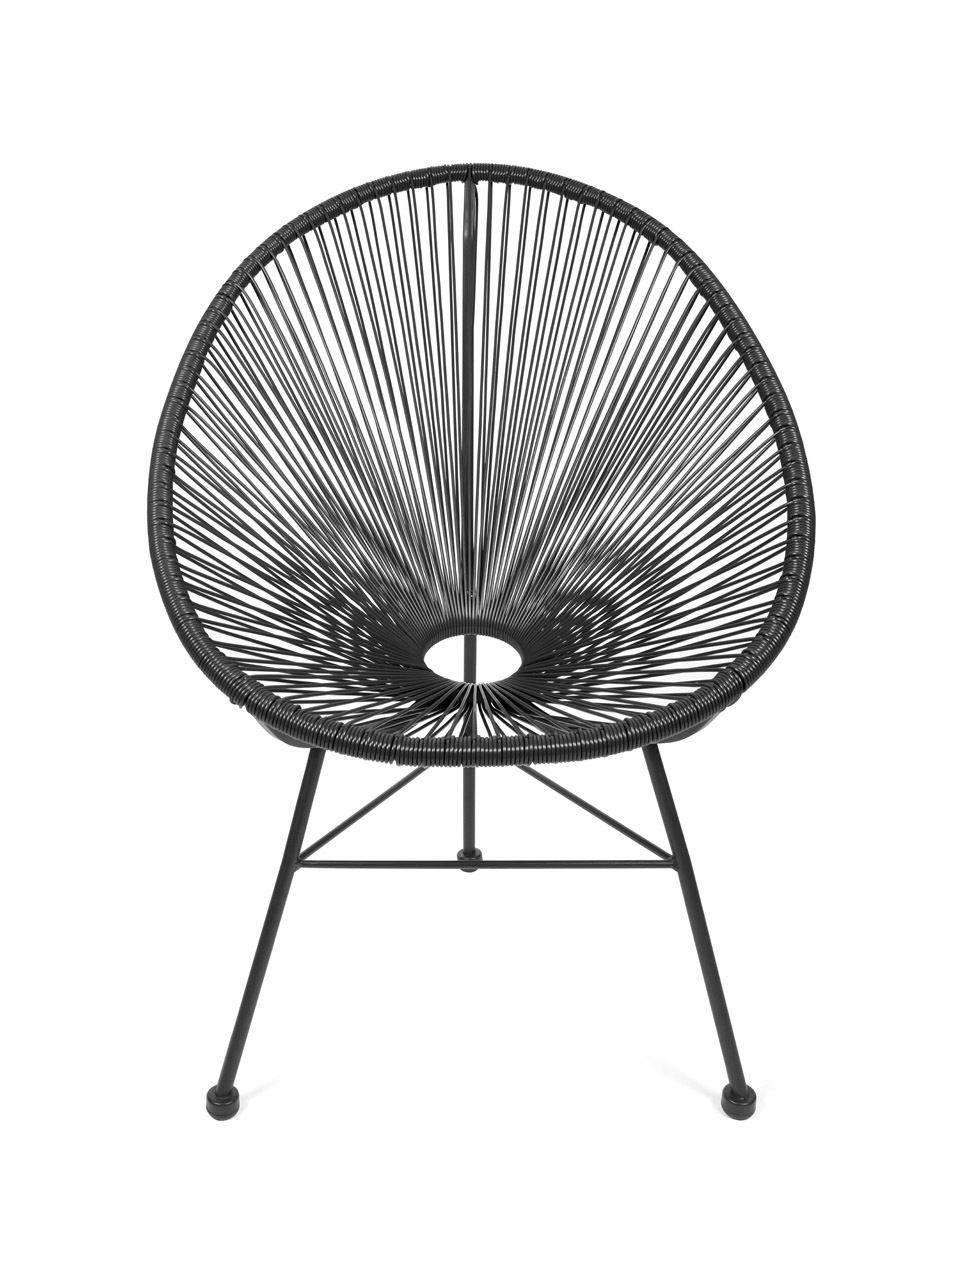 Acapulco Sessel Acapulco Stuhl Chair Sessel Schwarz Design Klassiker In Möbel